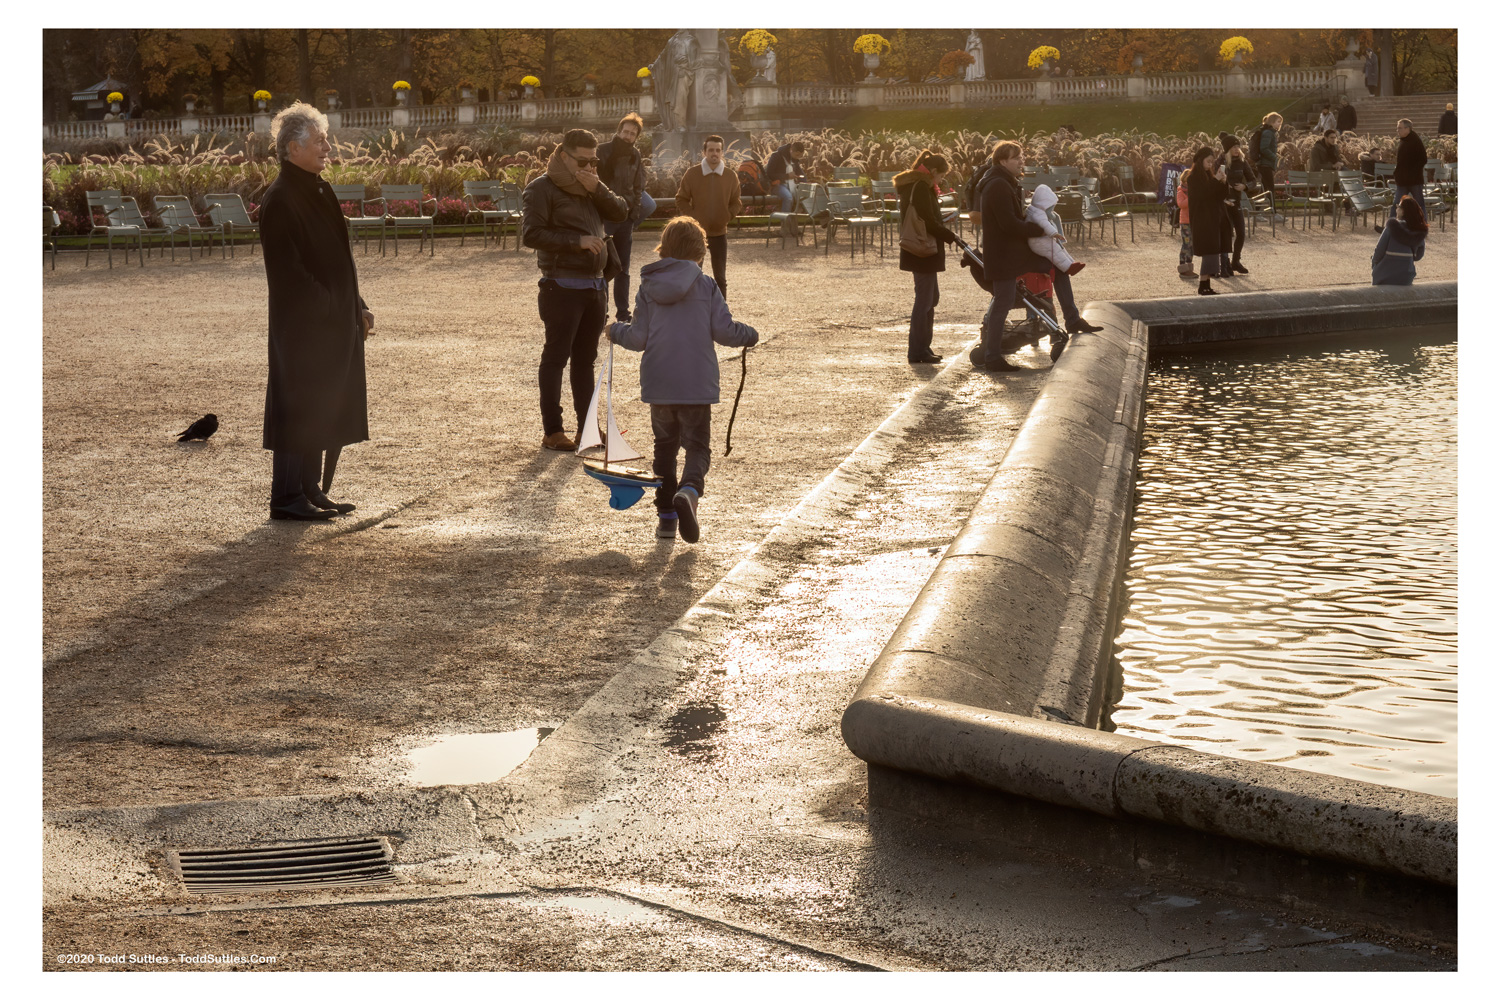 JOBID191113-03-Afternoon_Paris_Park_Border_wm_10x15